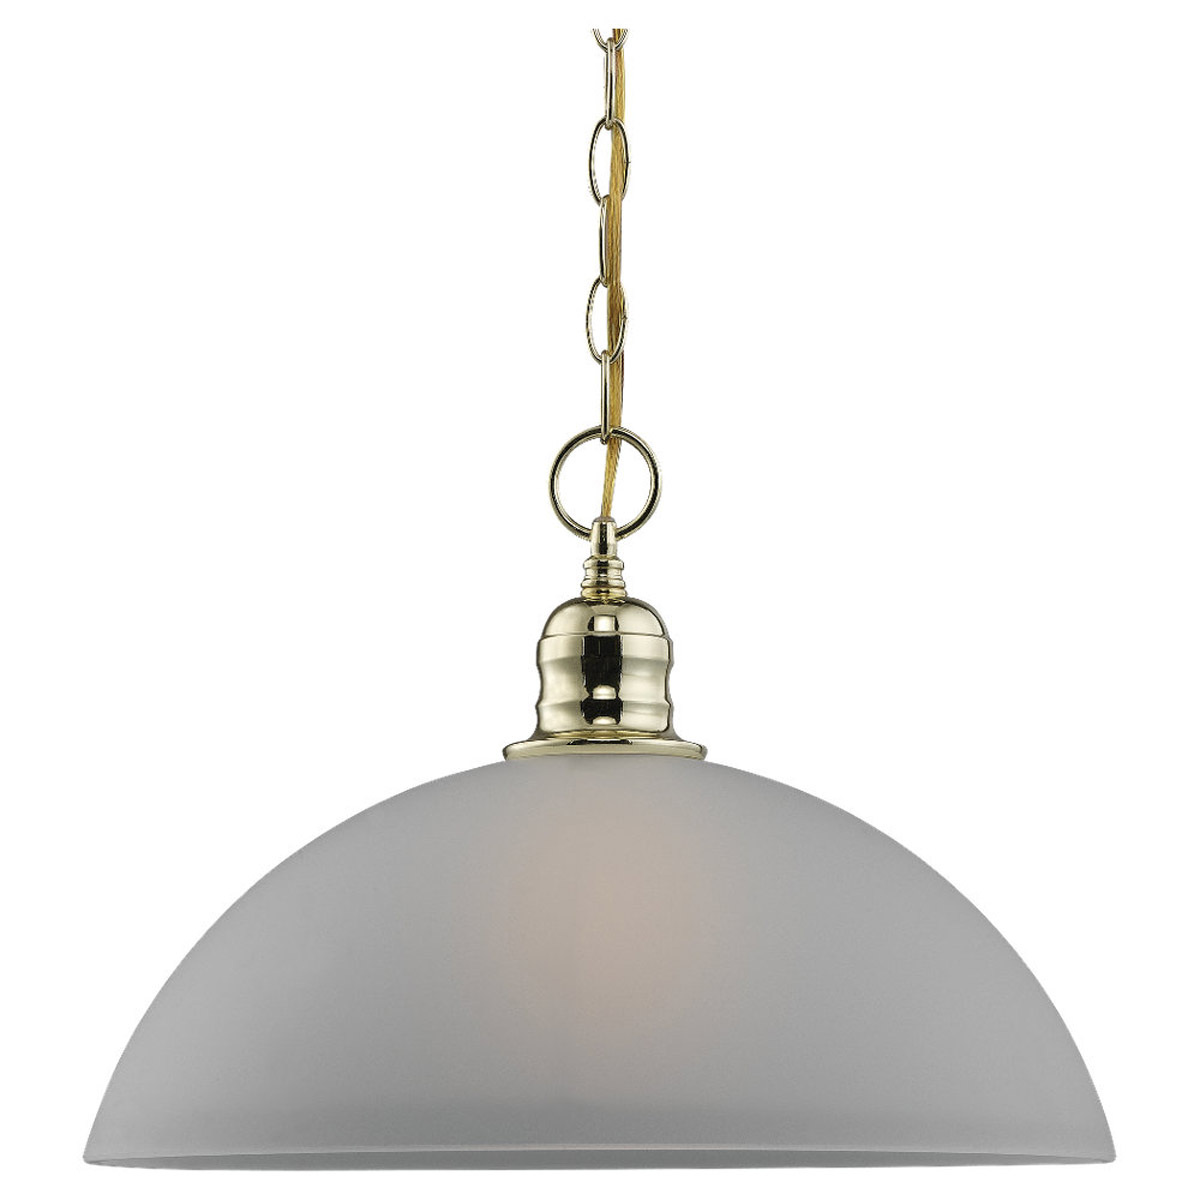 Sea Gull Lighting Linwood 1 Light Pendant in Polished Brass 65225-02 photo